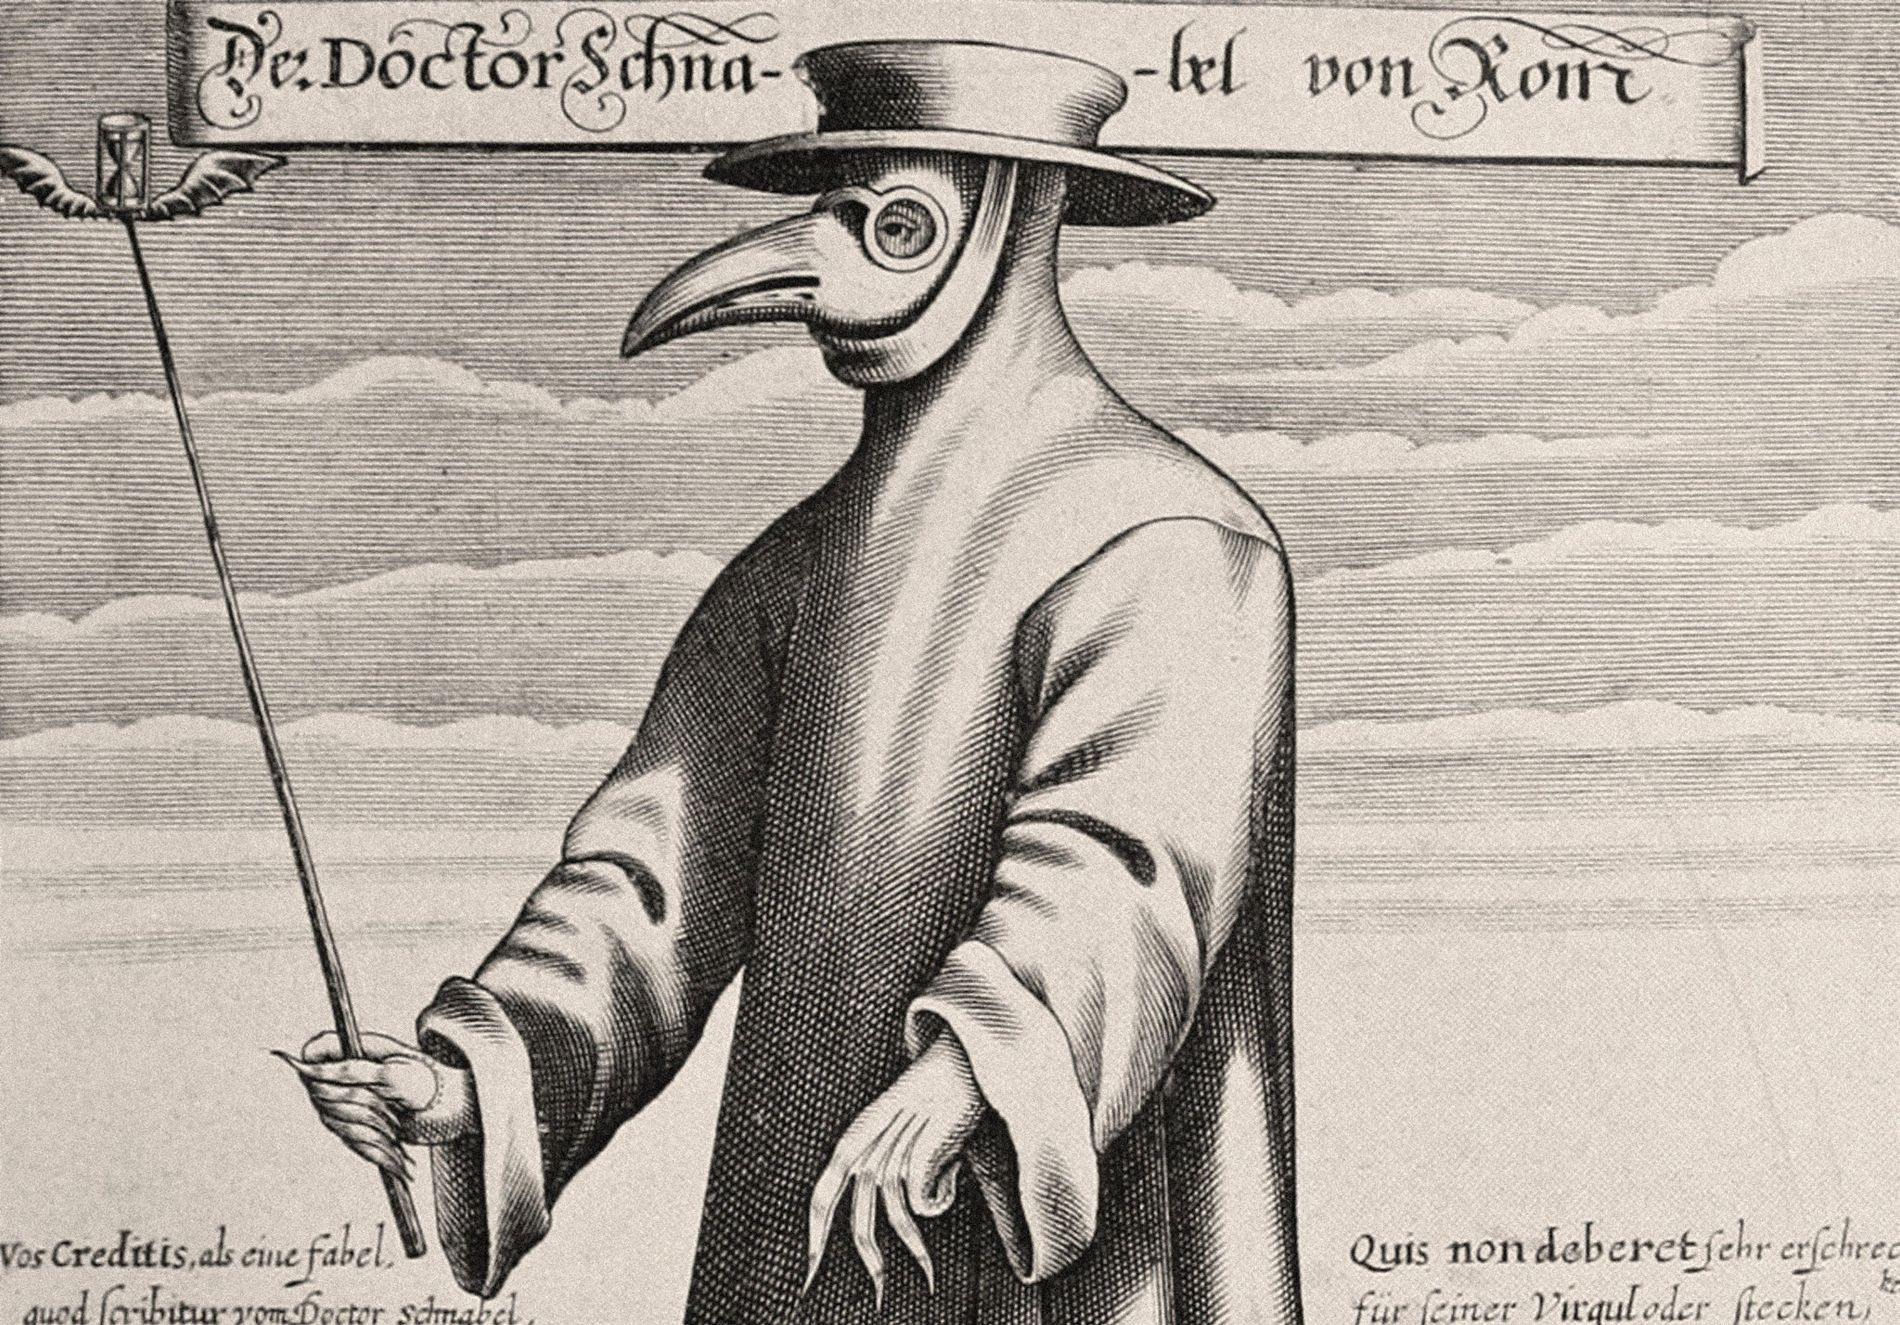 https://static.nationalgeographic.fr/files/styles/image_3200/public/plague-doctors-reference-og.jpg?w=1900&h=1325